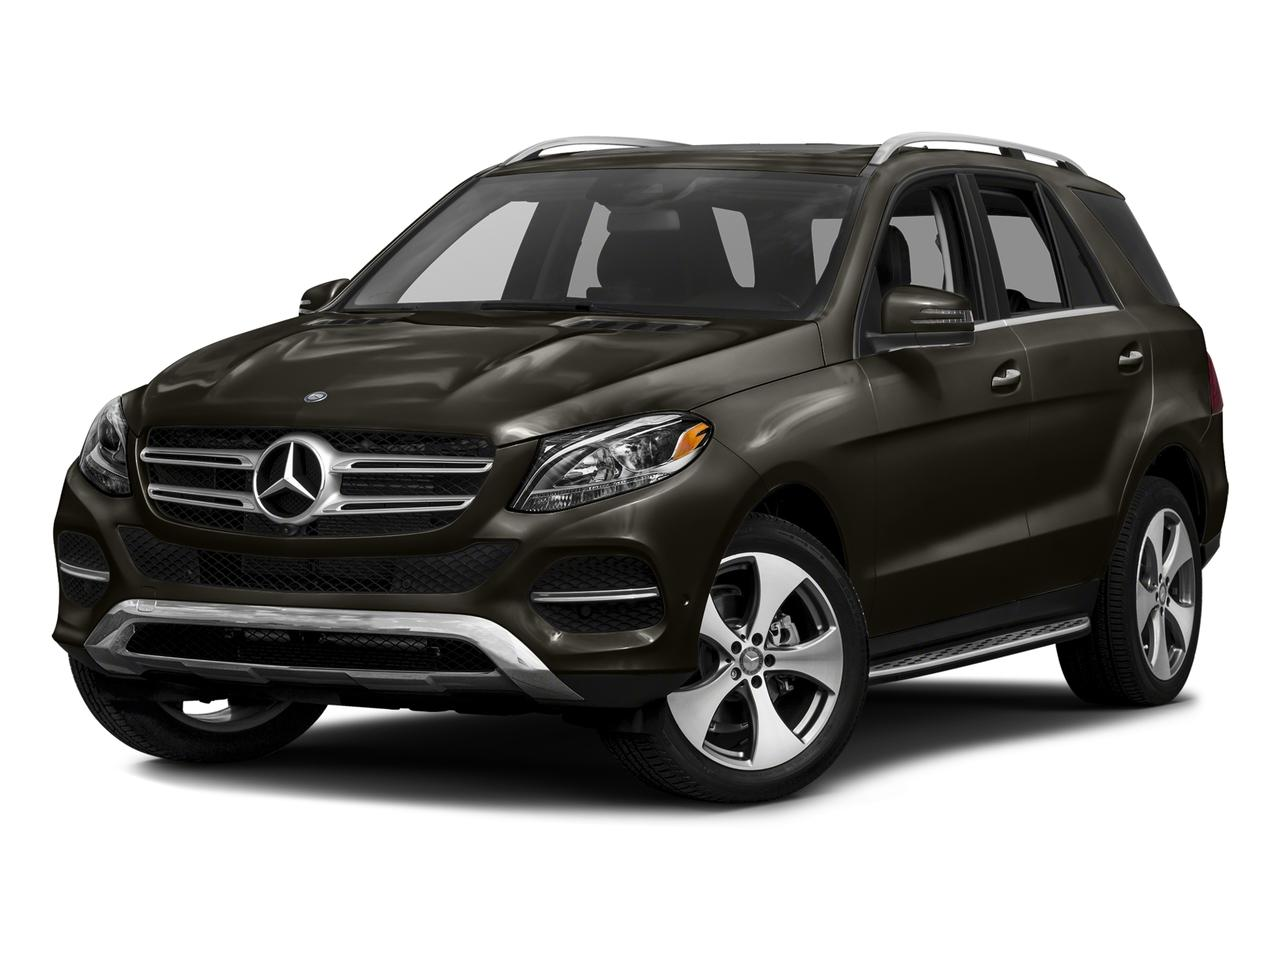 2016 Mercedes-Benz GLE Vehicle Photo in Houston, TX 77074